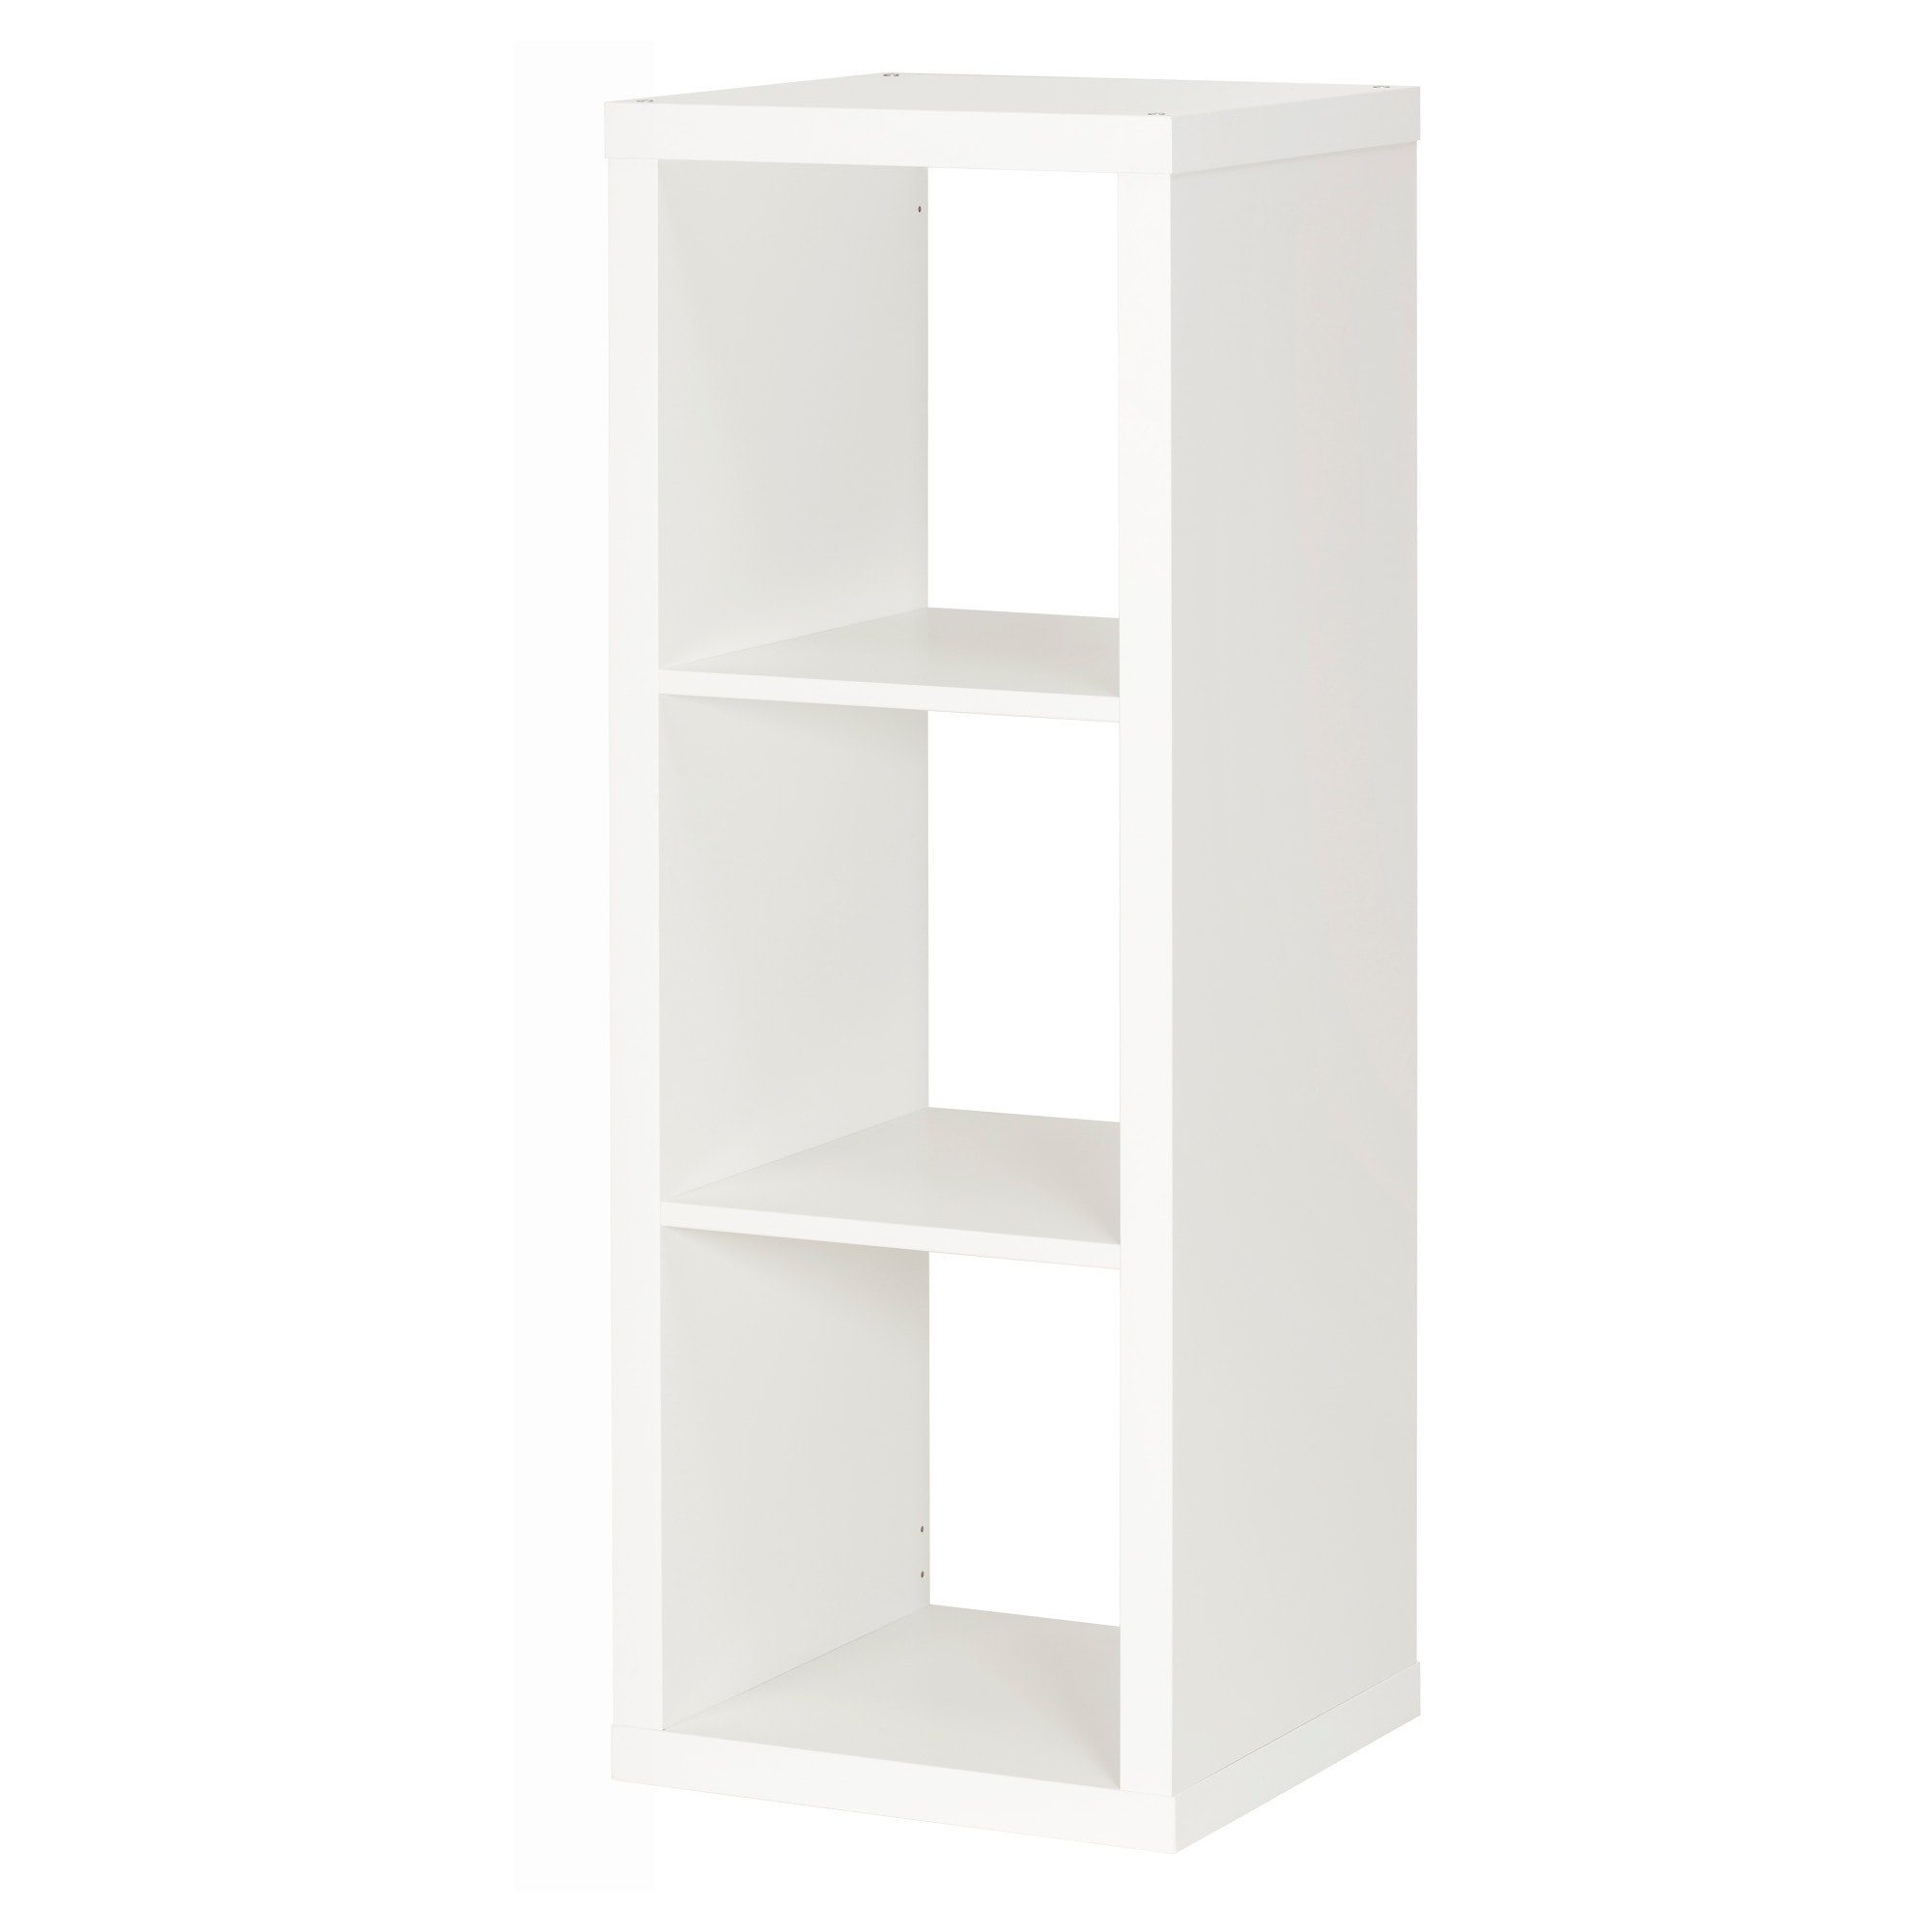 Kallax Regal Ikea kallax shelving unit black brown ikea